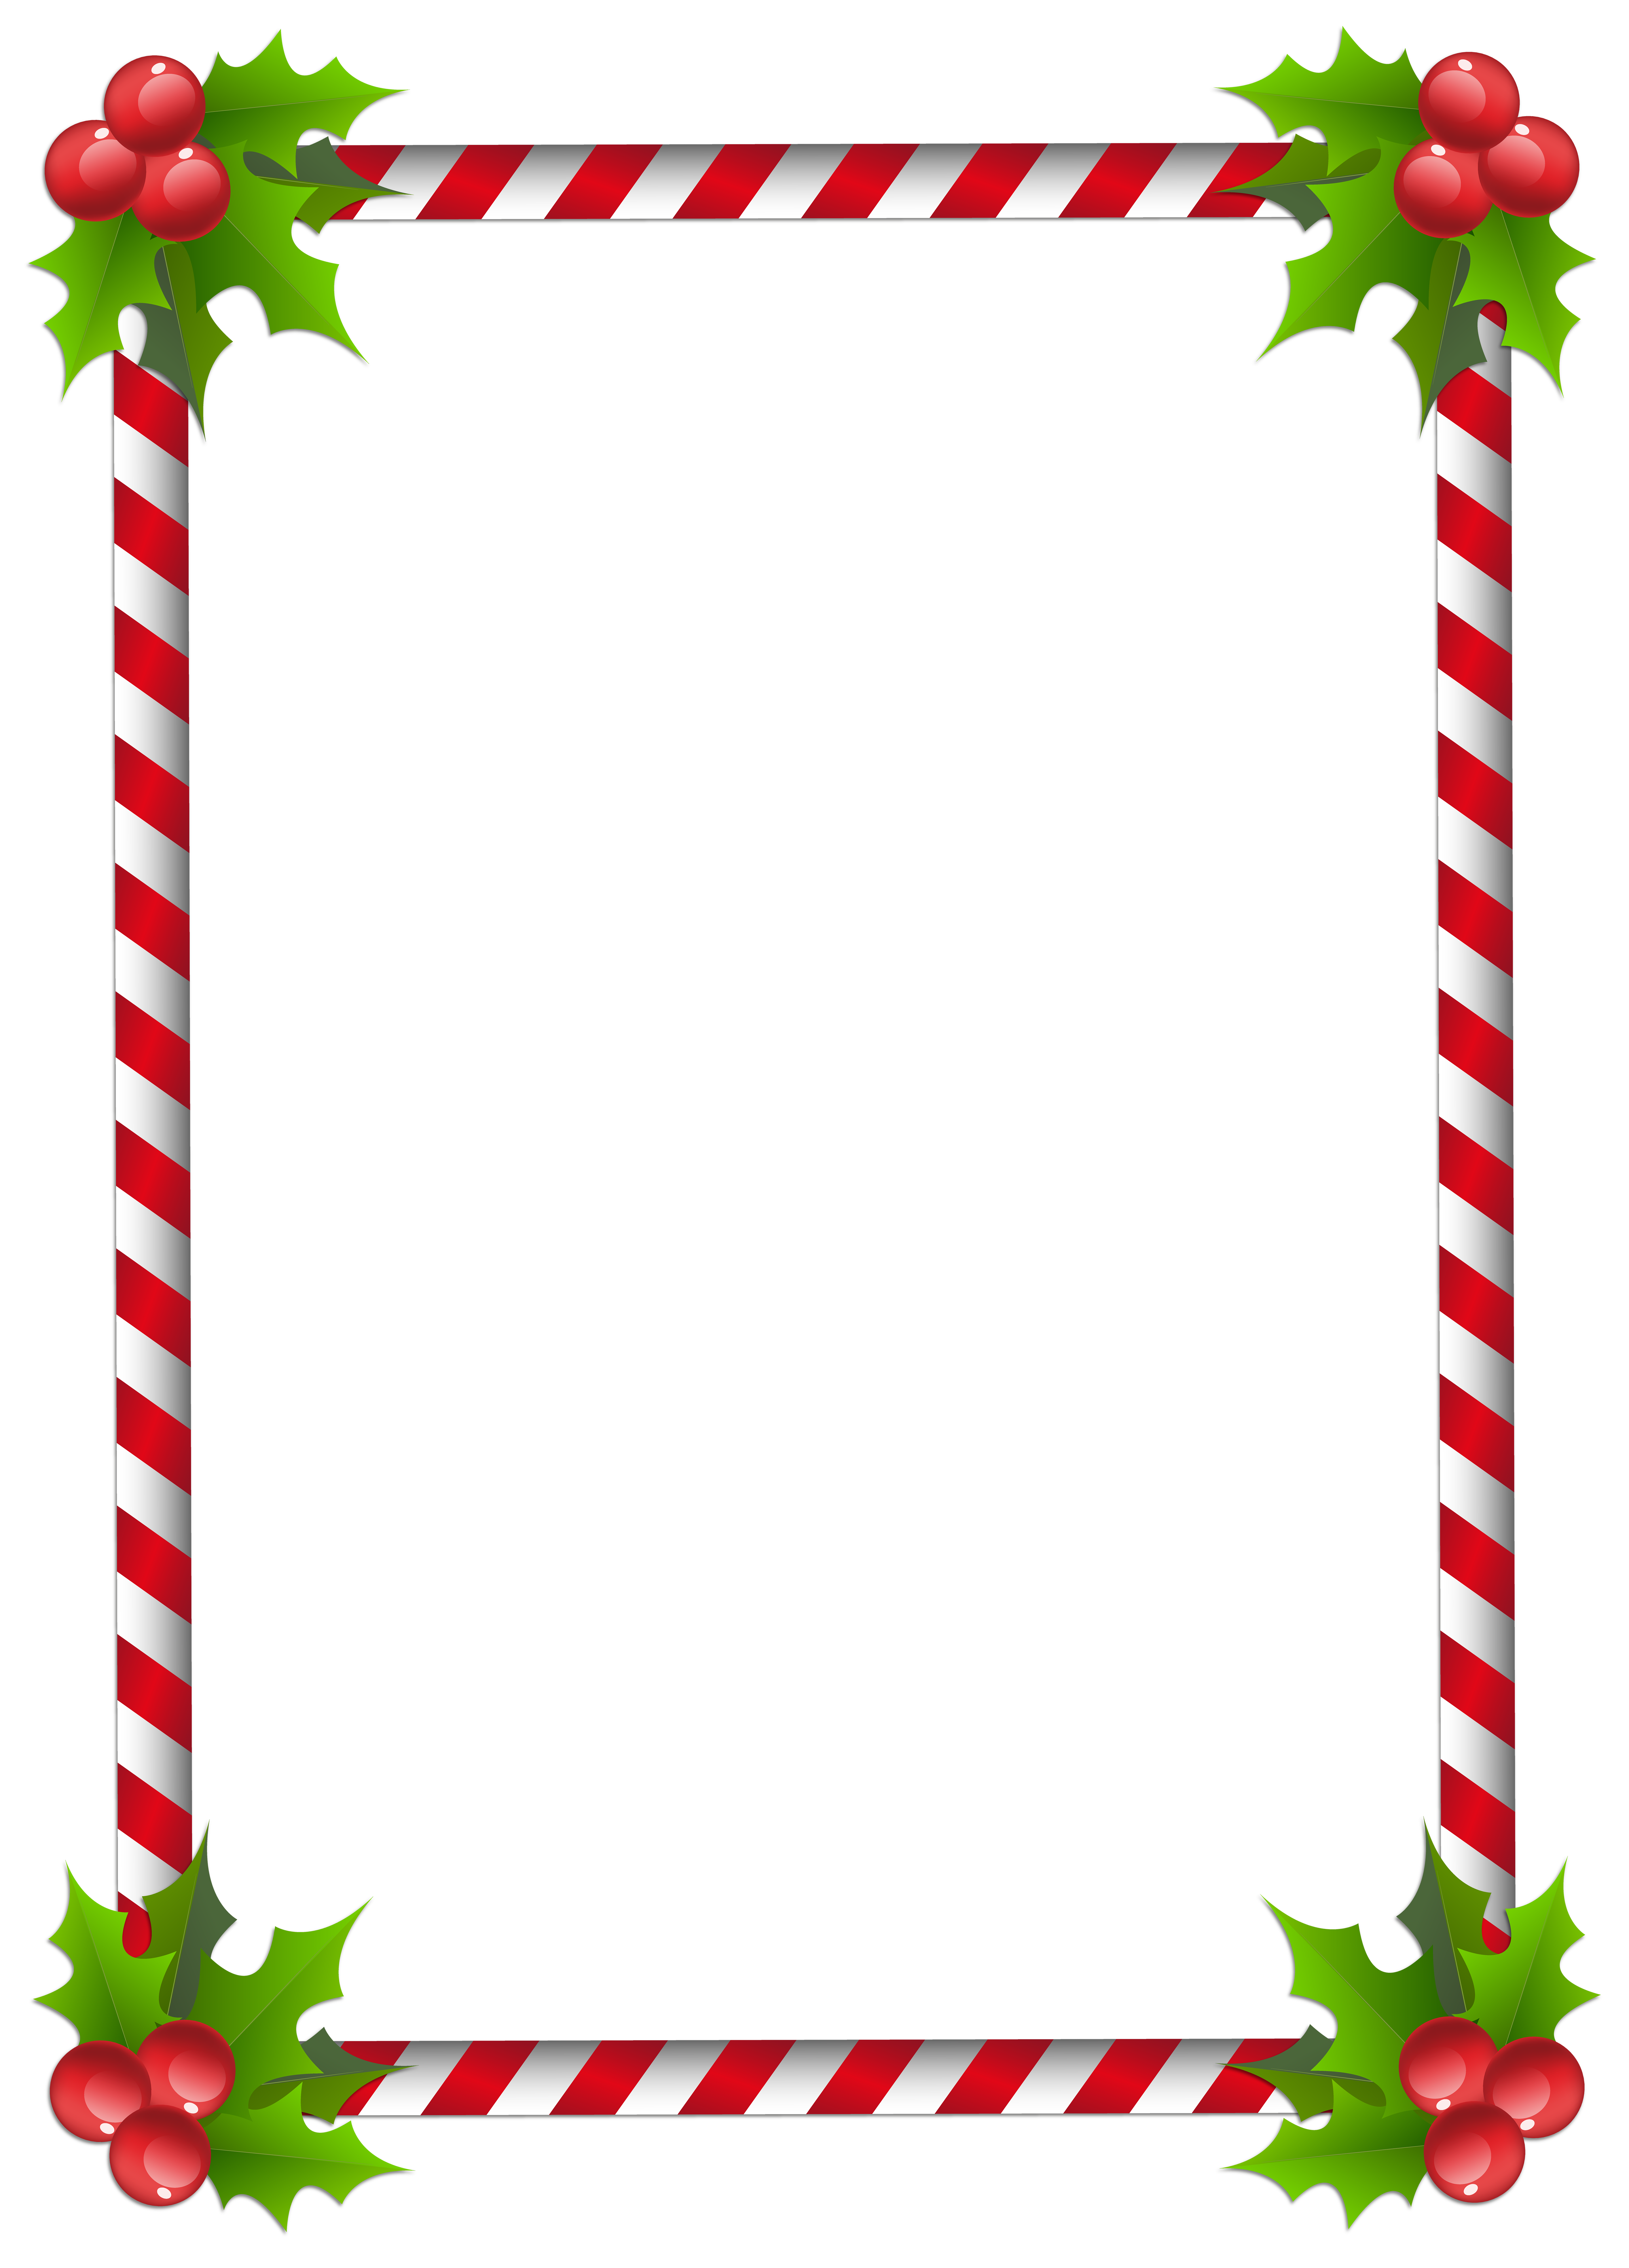 Clipart ghost border. Christmas transparent classic frame